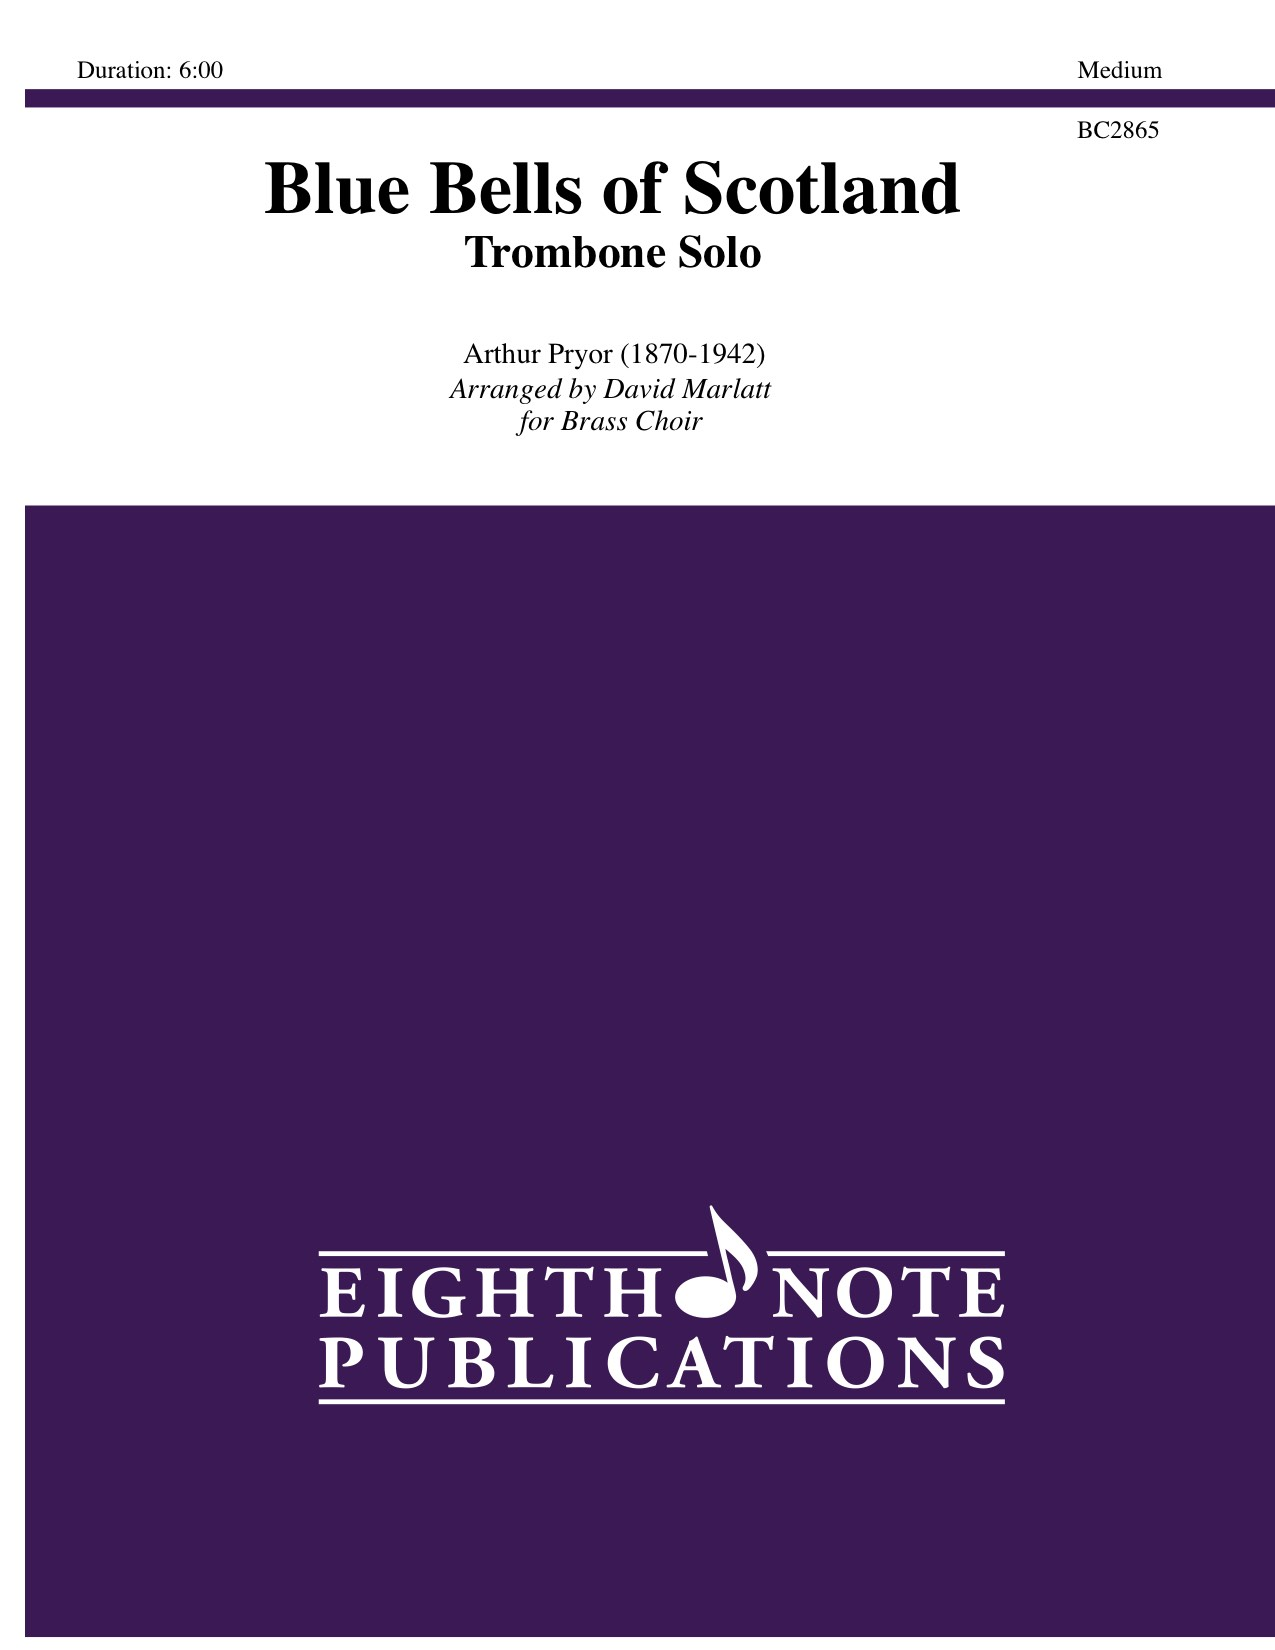 Blue Bells of Scotland - Trombone Solo - Arthur Pryor